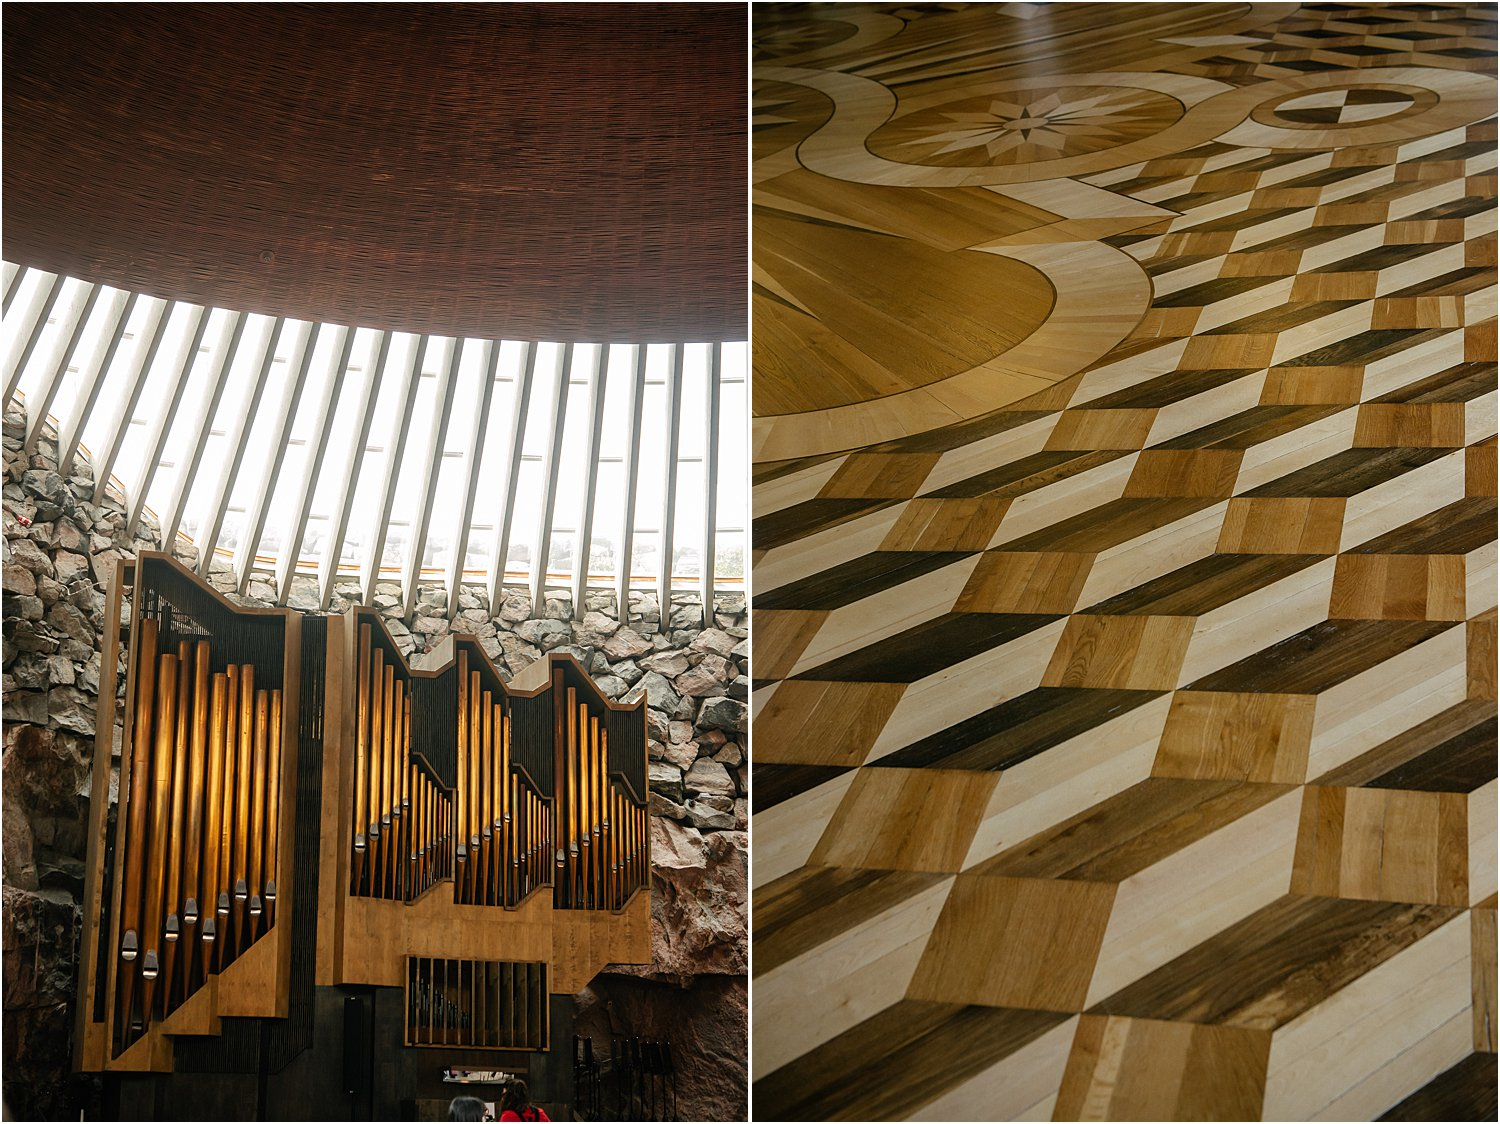 DPS How to use pattern and repetition in photography by Lily Sawyer – patterned floor and interior